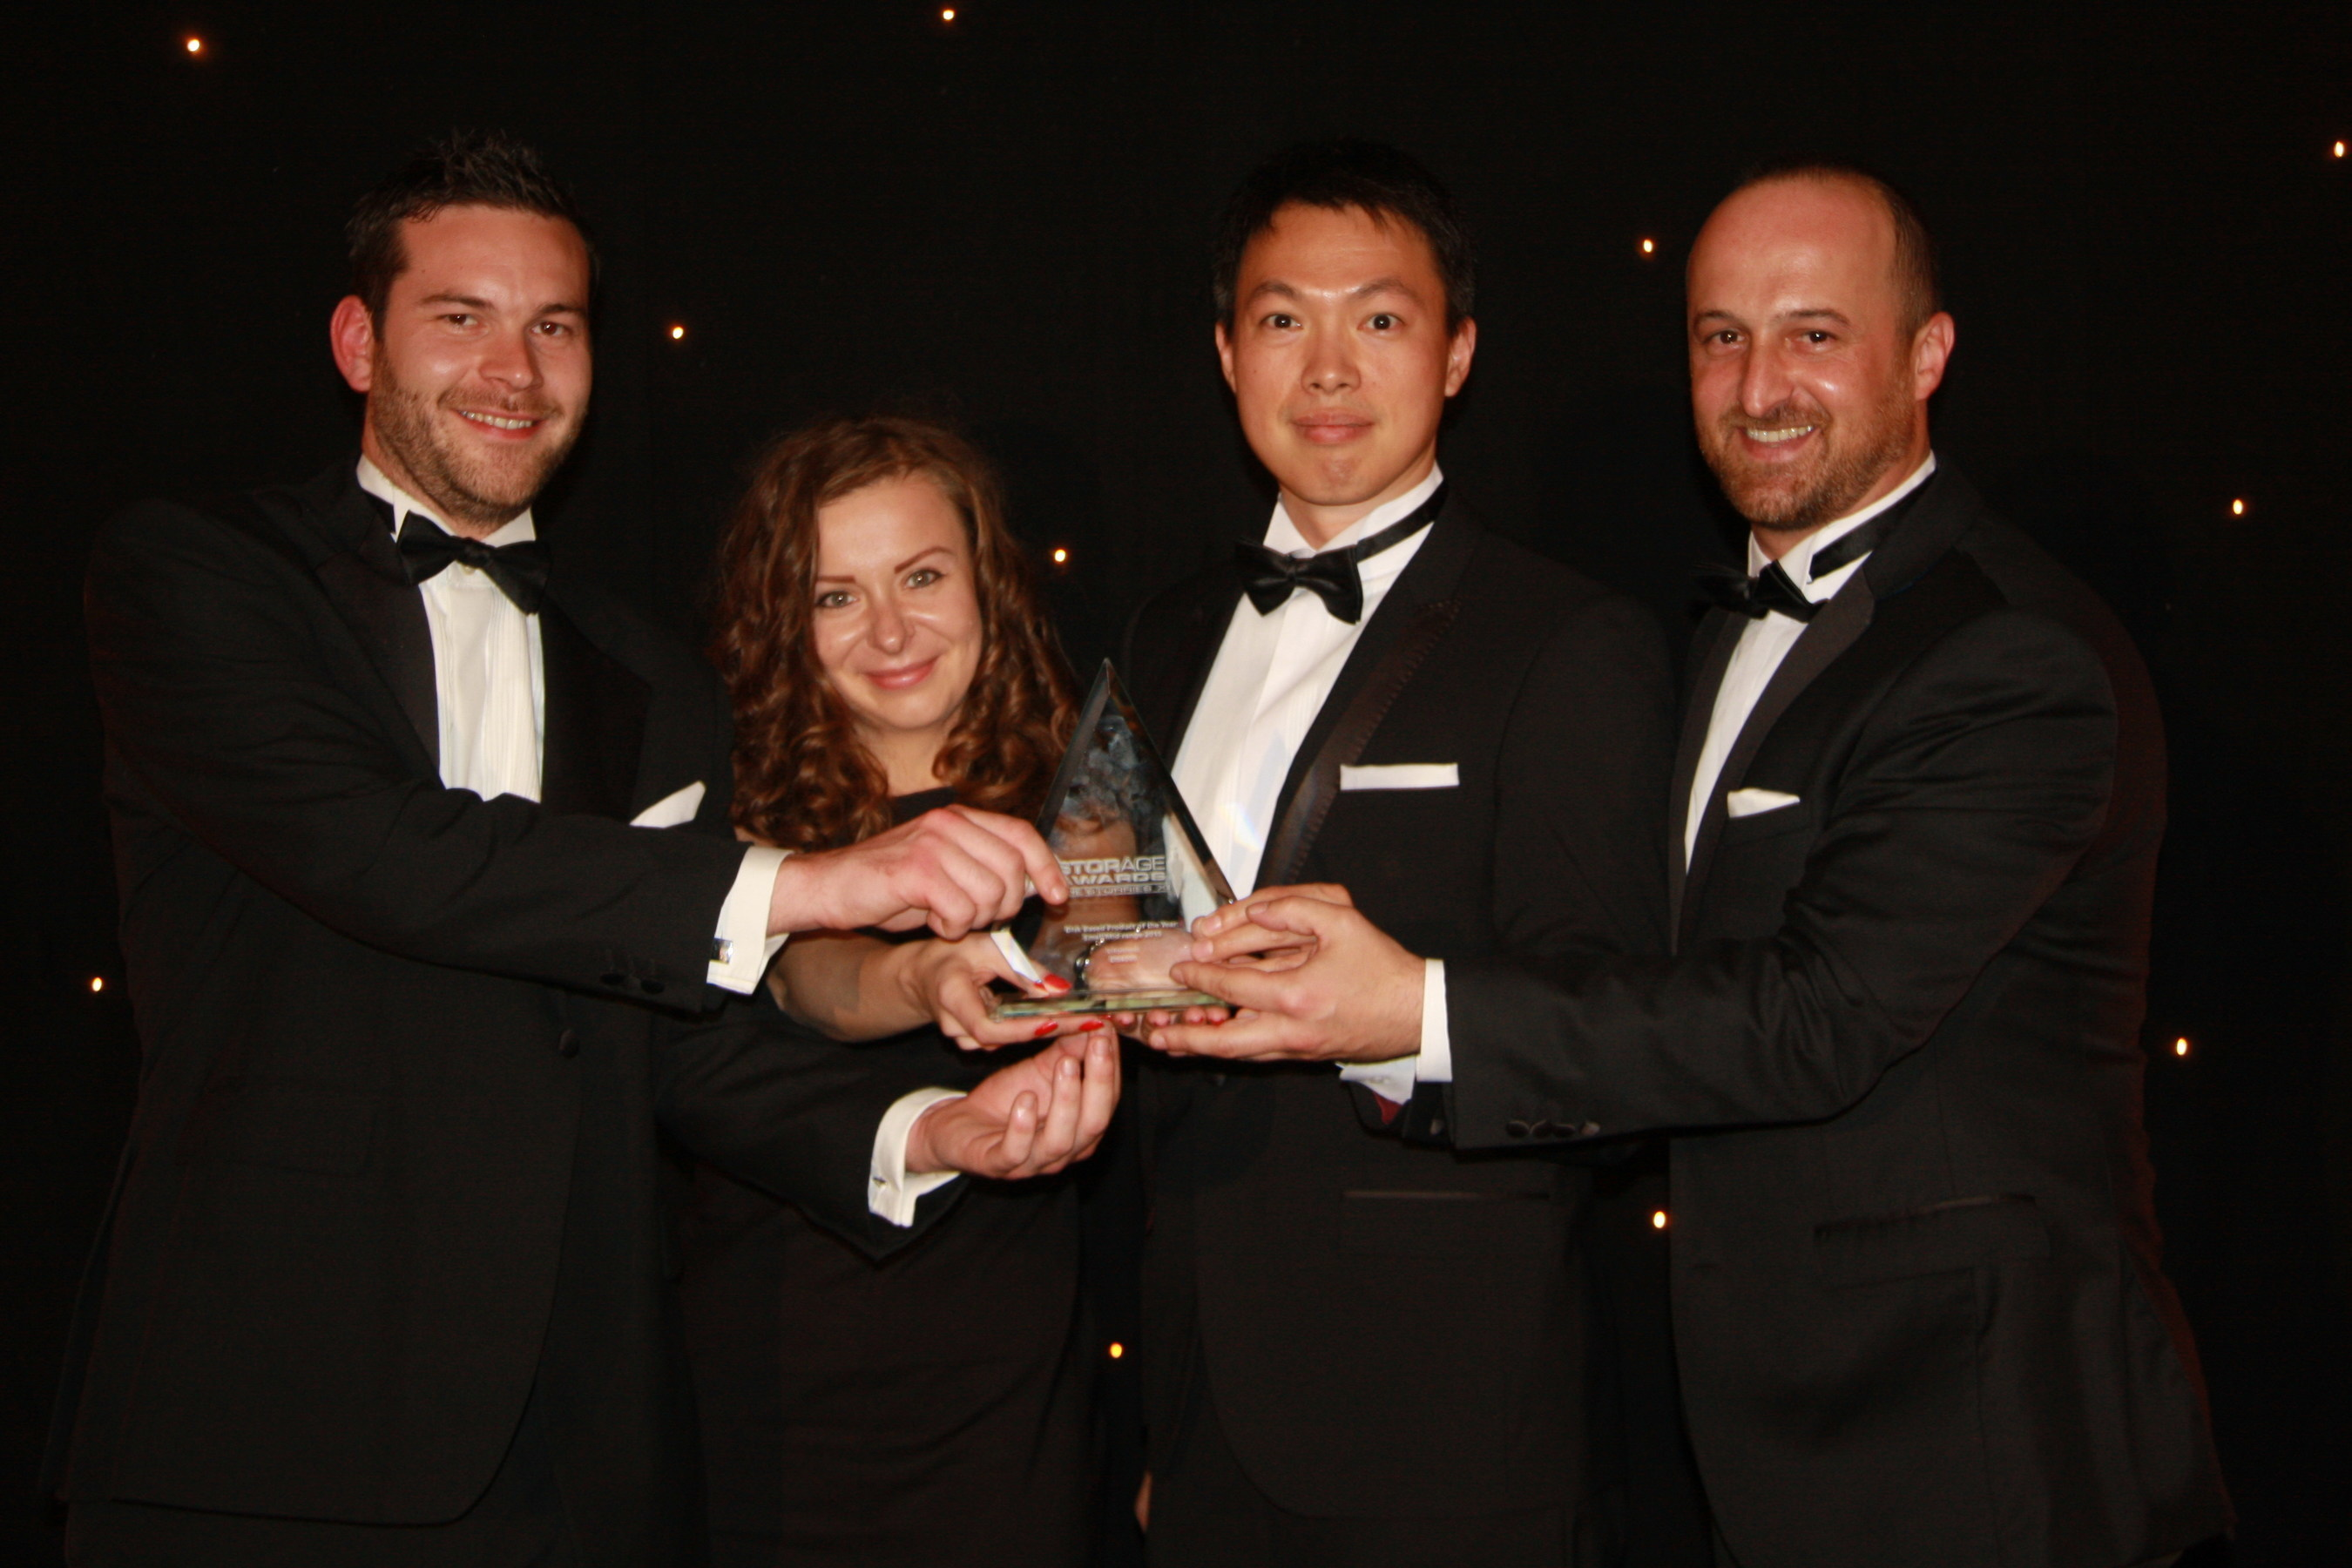 """Infortrend EonStor DS 4000 wins """"Disk Based Product of The Year"""" Awards"""